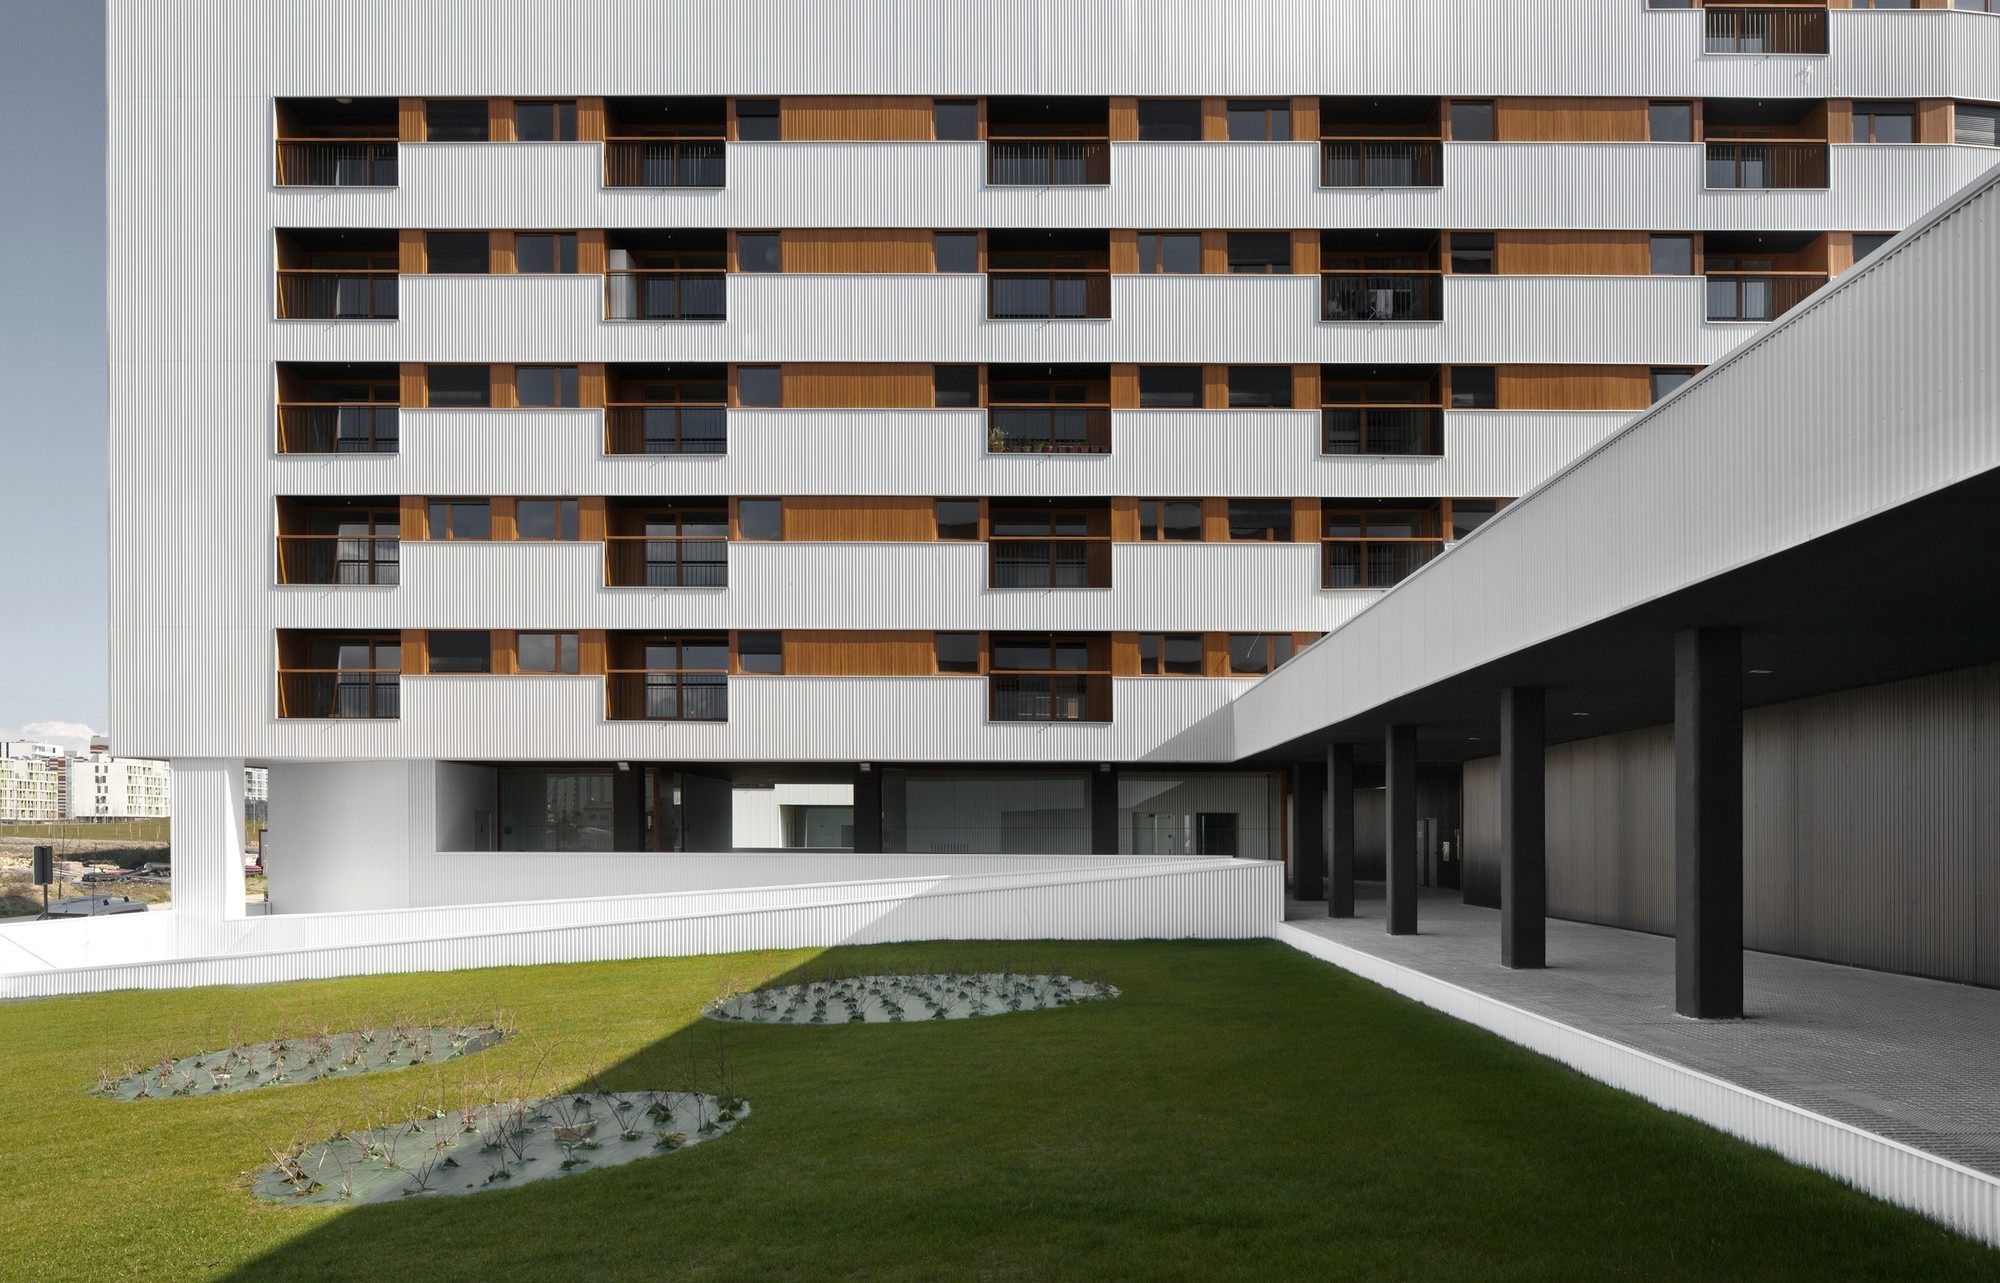 Gallery of new group of council flats in vitoria gasteiz - Arquitectos vitoria ...